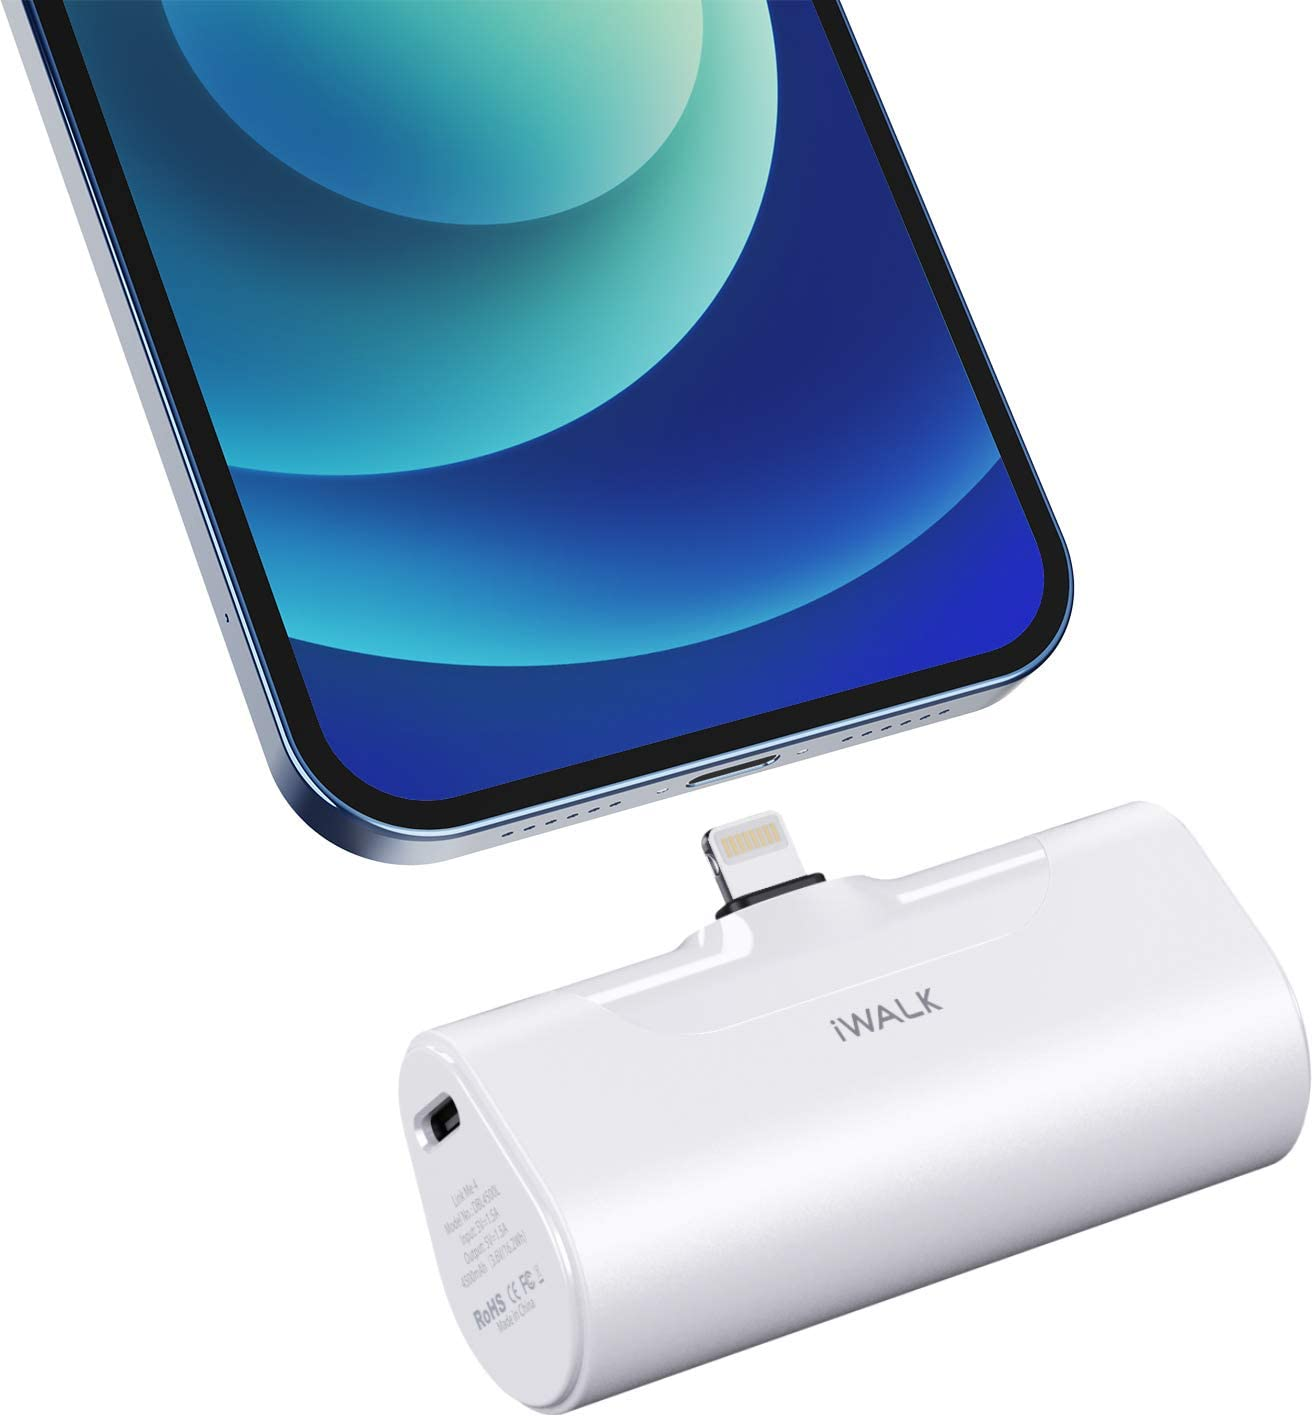 iWALK Small Power Bank 4500mAh Ultra-Compact Portable Charger Battery Pack Compatible with iPhone12 Mini/12/12 Pro/12 Pro Max/11 Pro/XS Max/XR/X and More